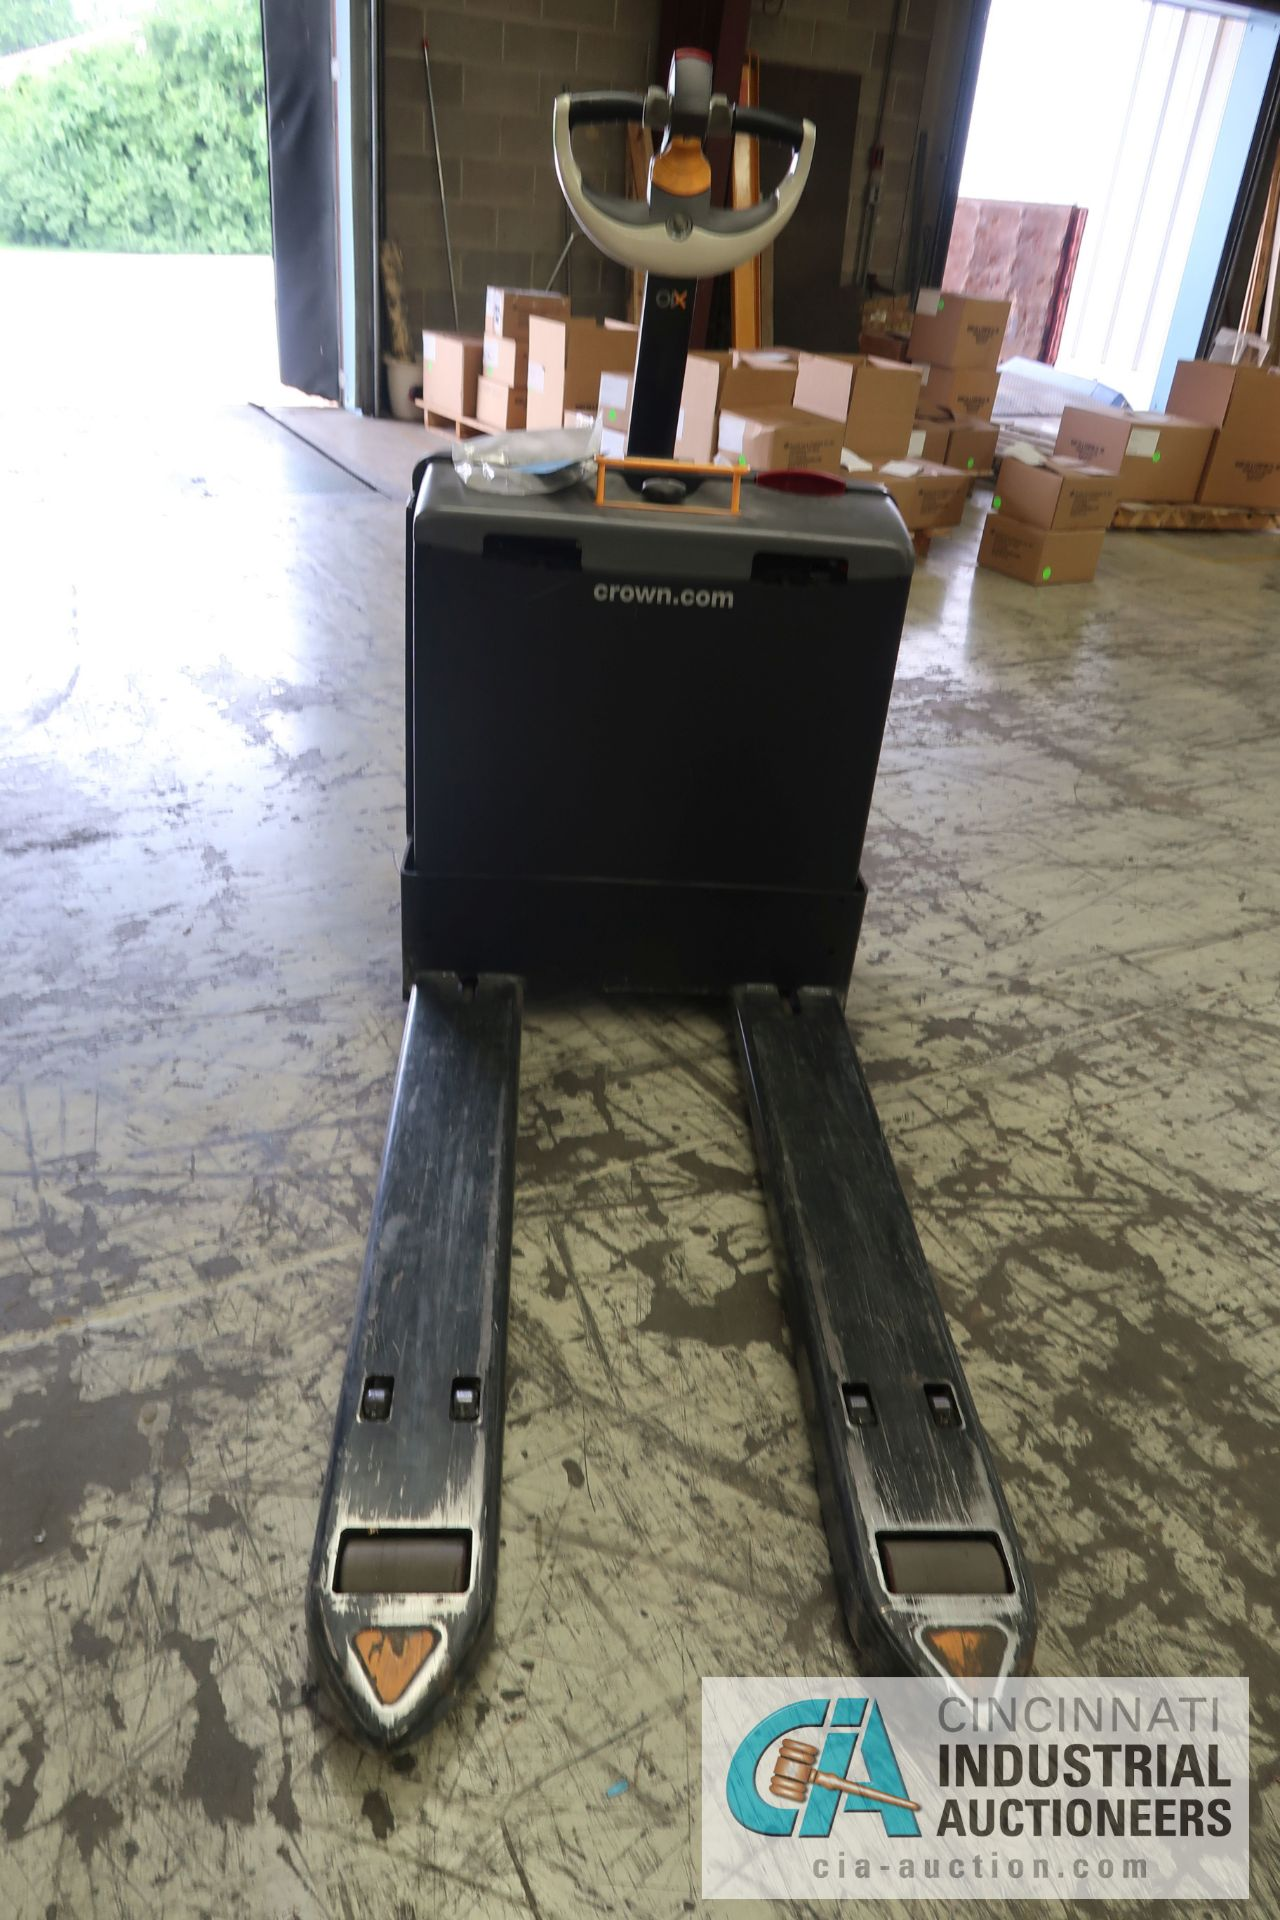 2,000 LB. CROWN MODEL WP3035-45 ELECTRIC WALK BEHIND PALLET TRUCK; S/N 7A291635, WITH BUILT IN - Image 3 of 6